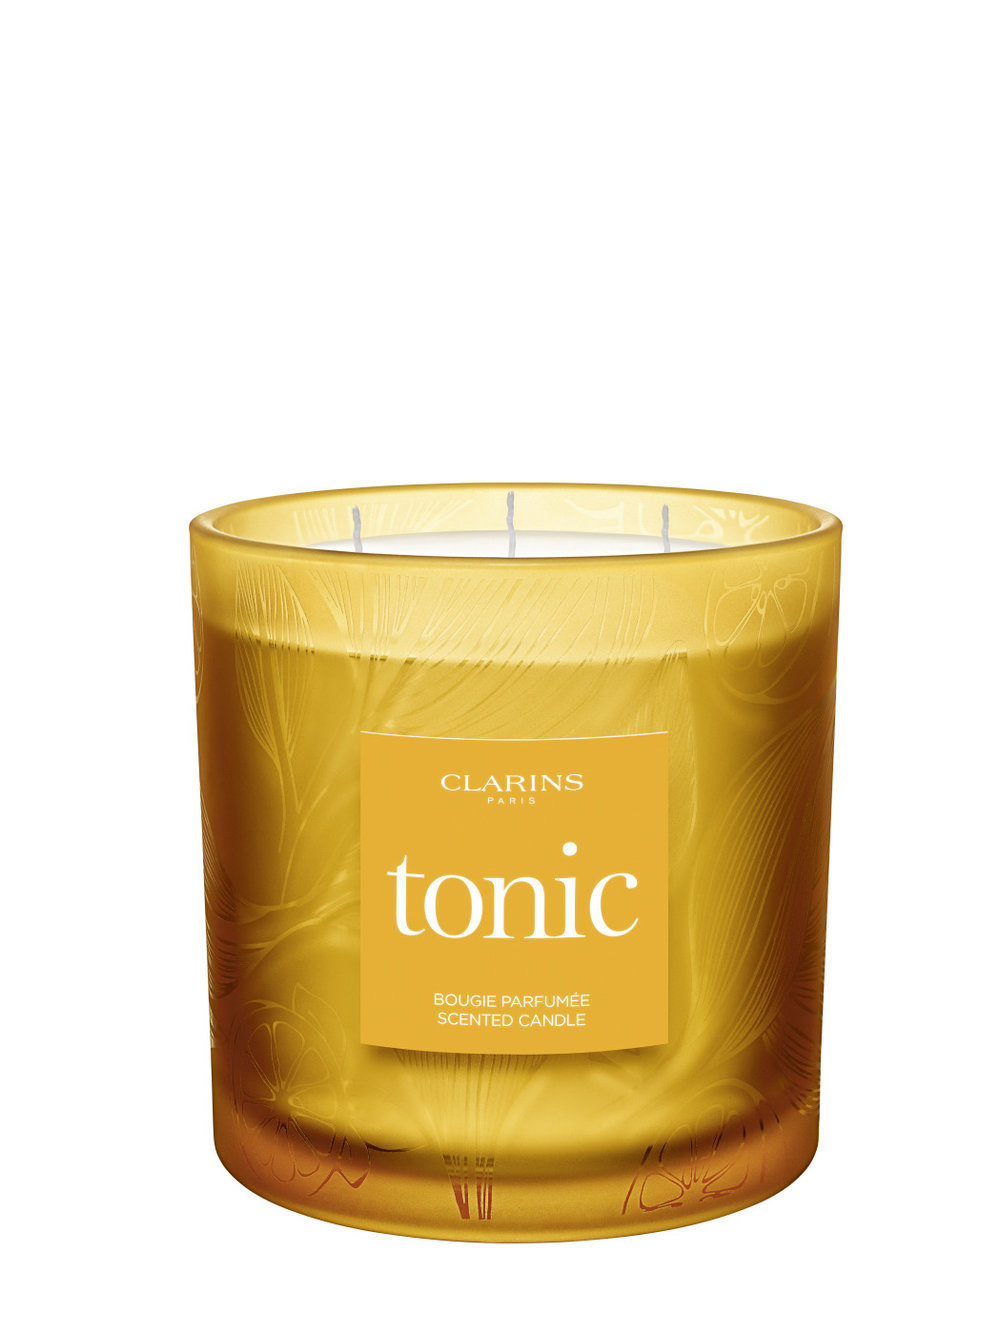 clarins-tonic-candle